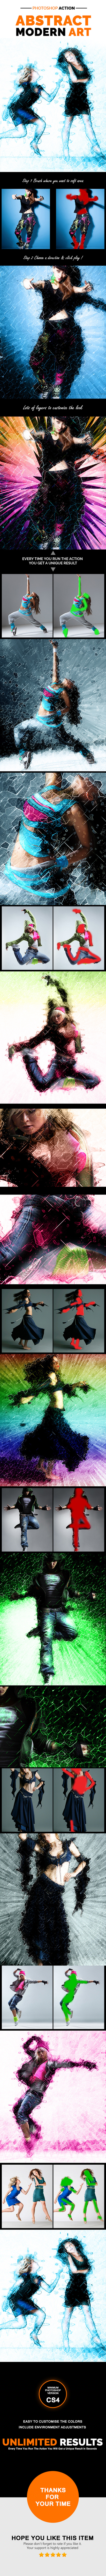 GraphicRiver Abstract Modern Art Photoshop Action 10132536